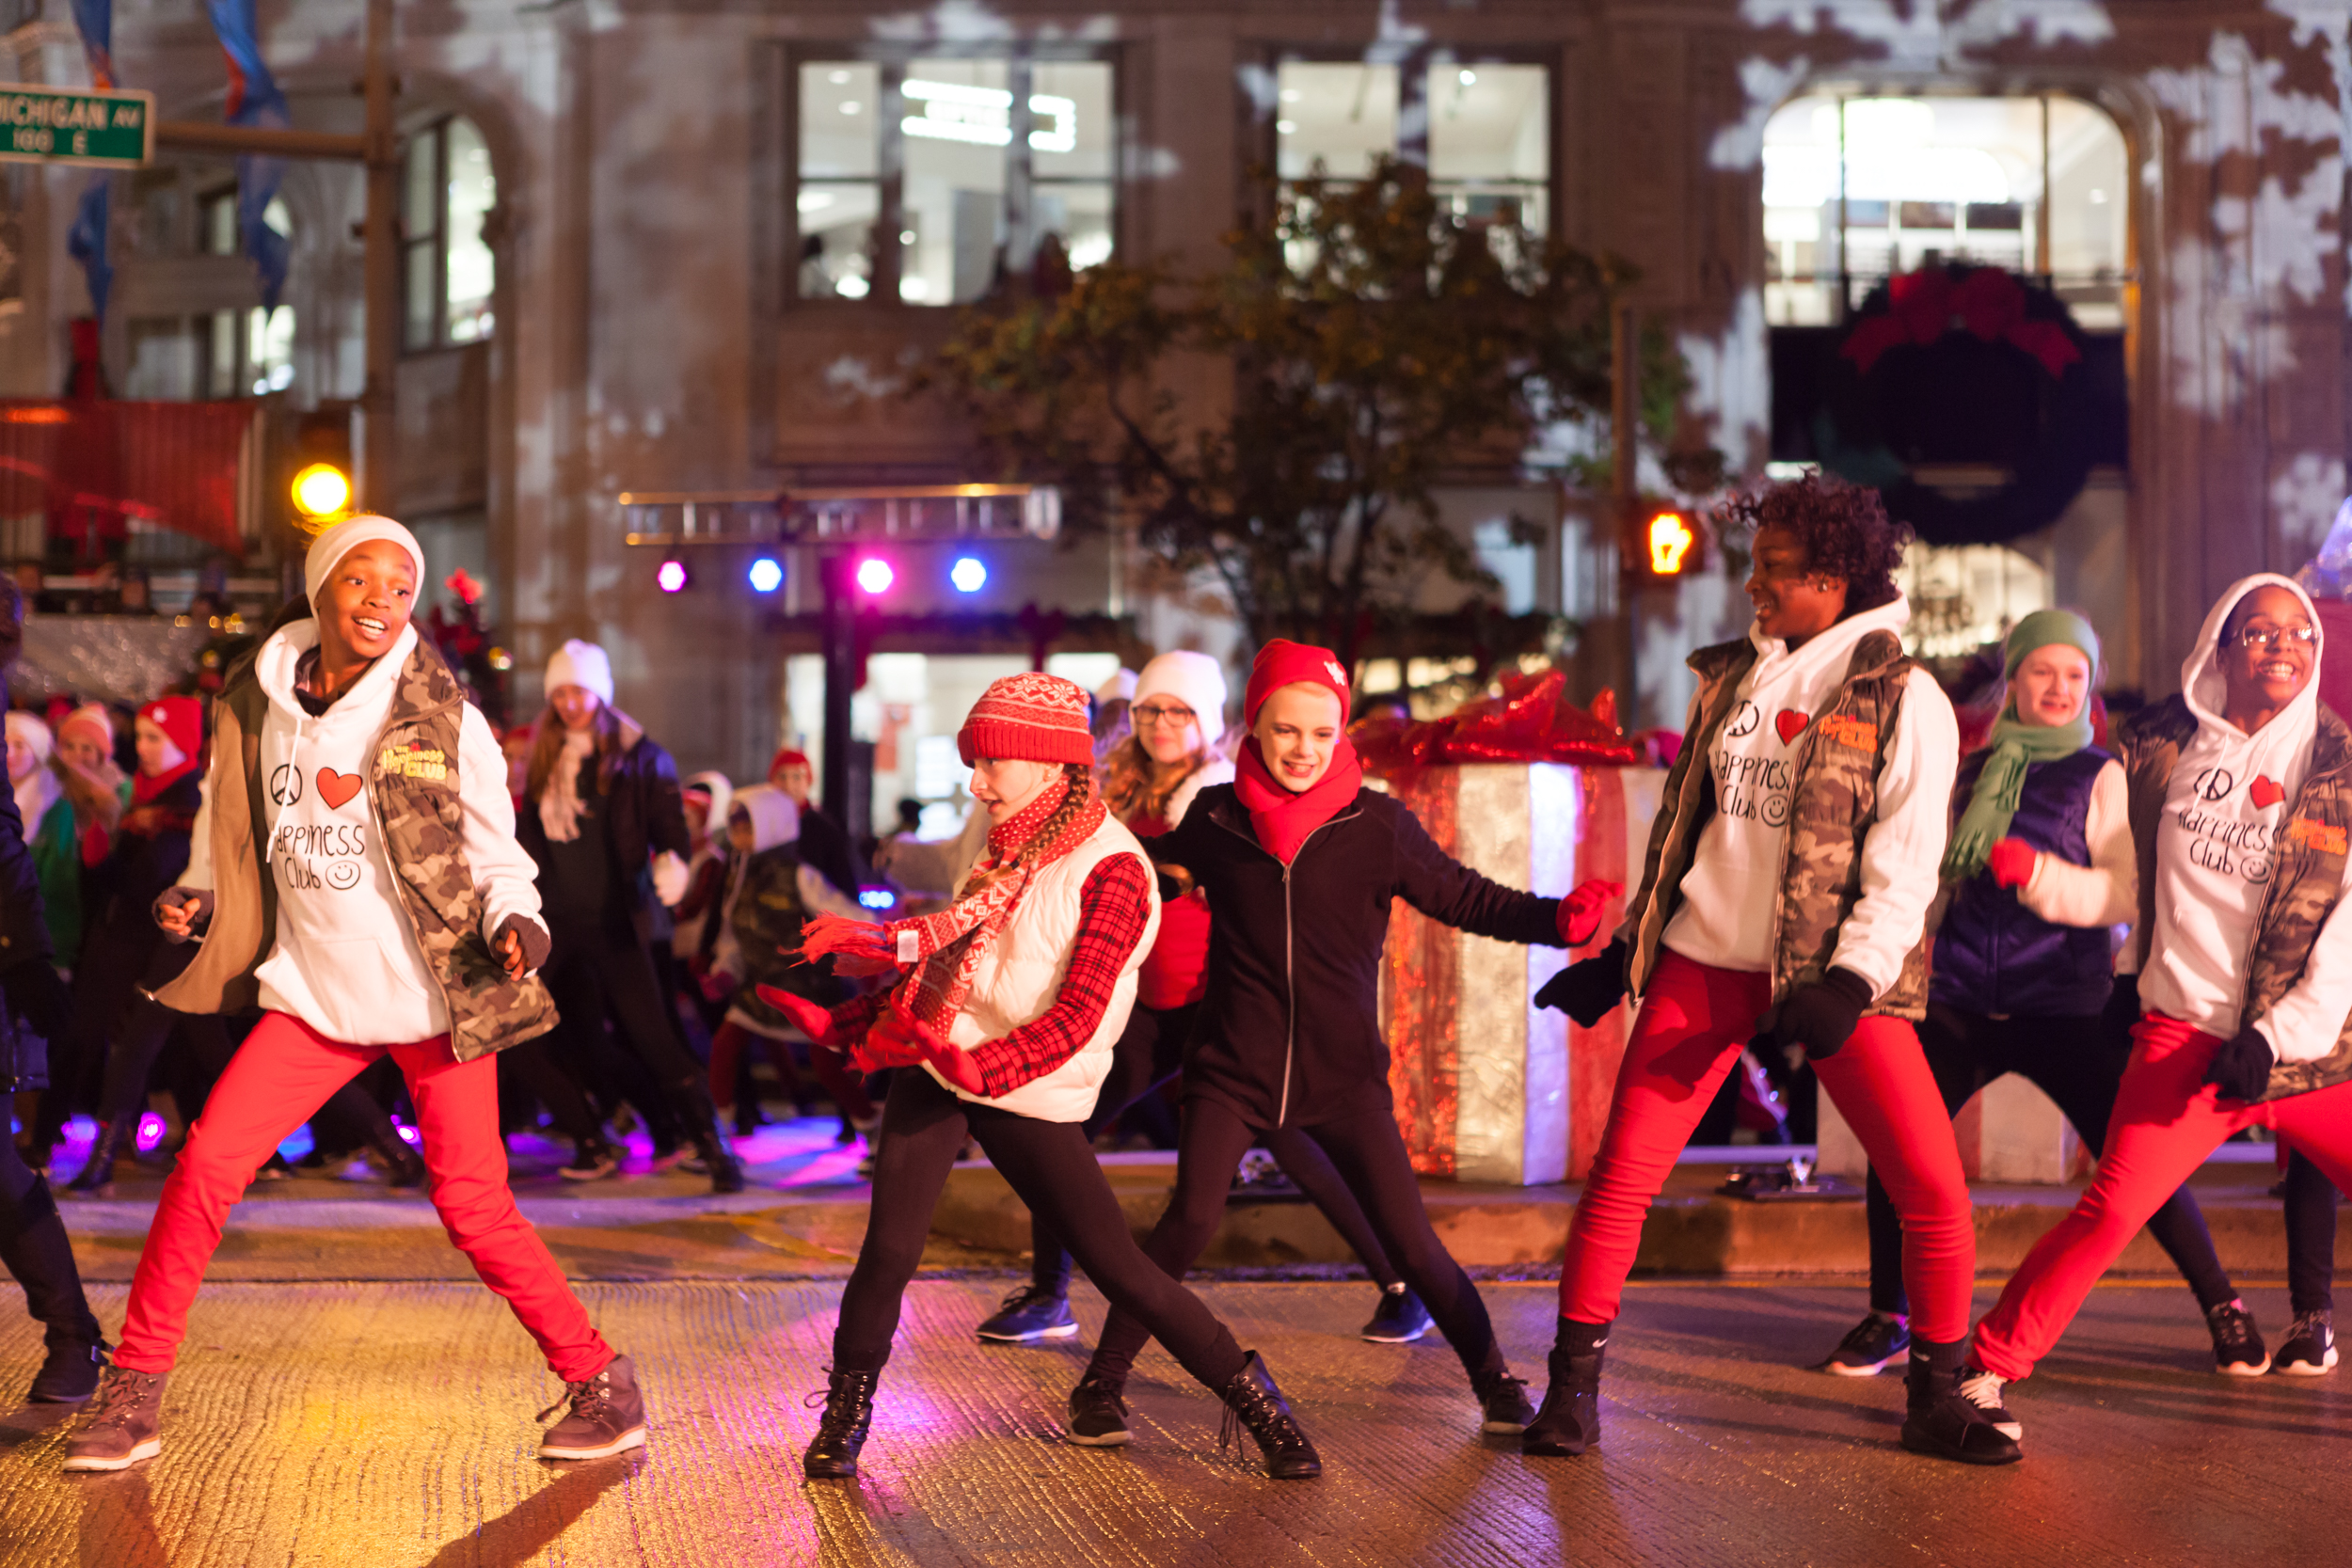 Christmas Parade Chicago 2019 Chicago Schedule of Events | Lights Festival